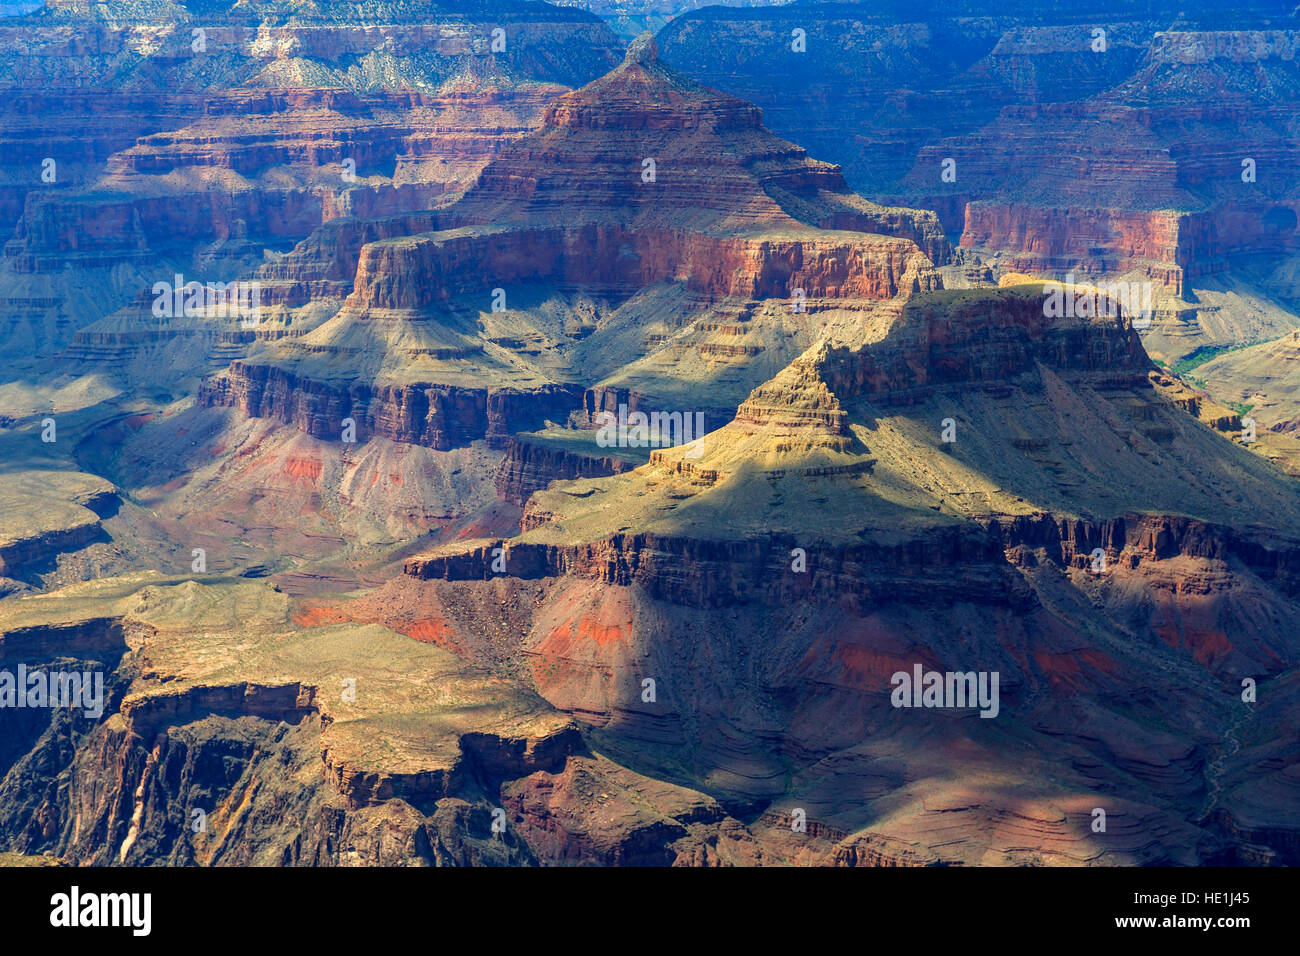 In this view shadows from the clouds move across the rock formations in Grand Canyon National Park, Arizona, USA Stock Photo